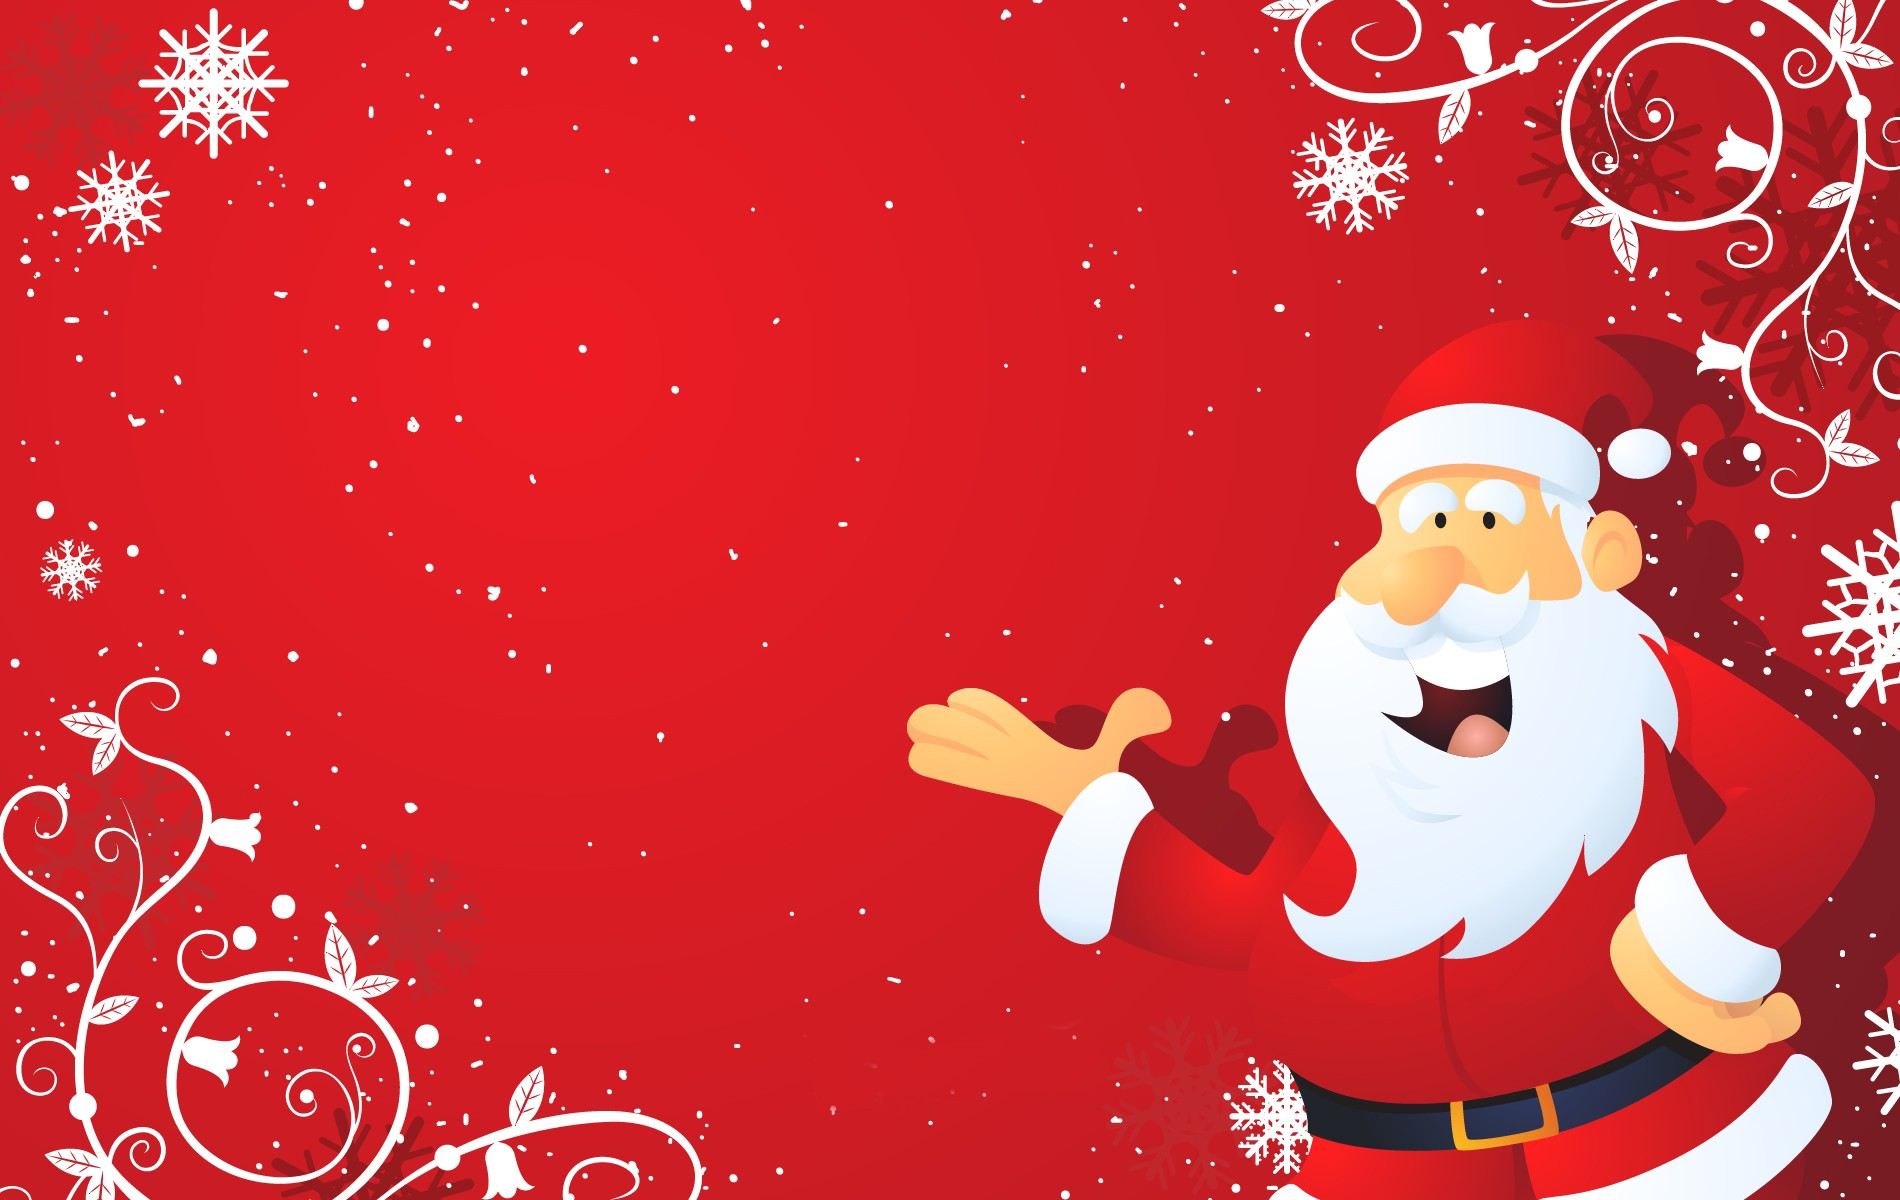 Christmas Cartoon Wallpapers For Desktop - HD Wallpapers Pop